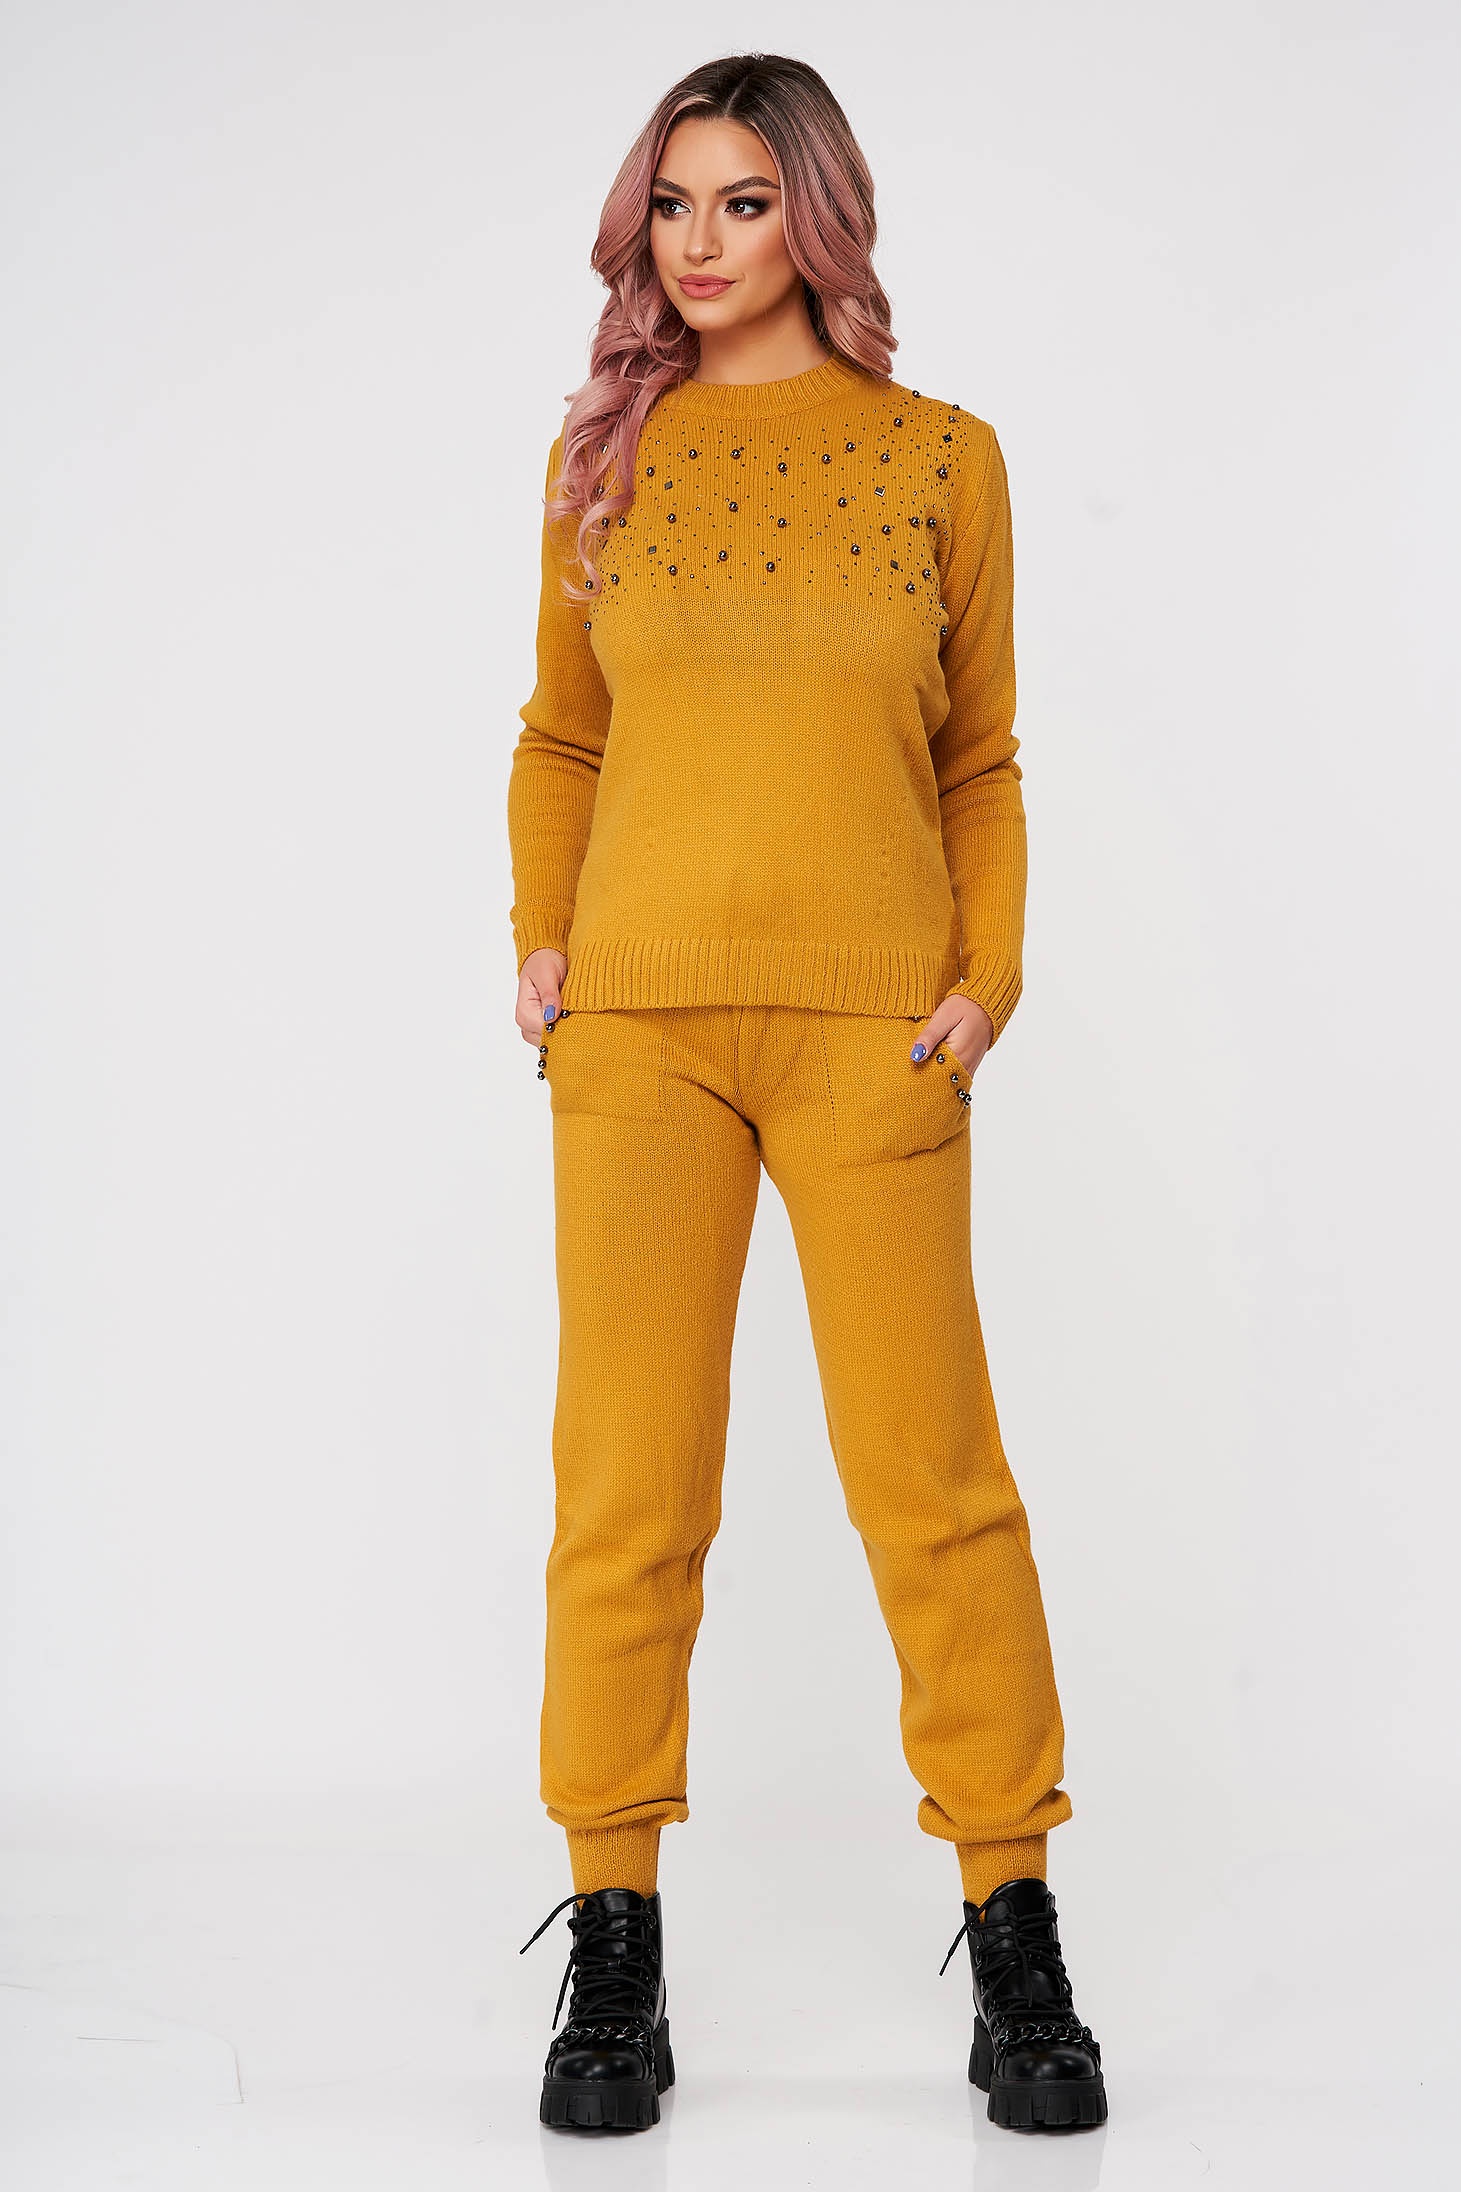 Mustard sport 2 pieces knitted 2 pieces with pearls medium waist